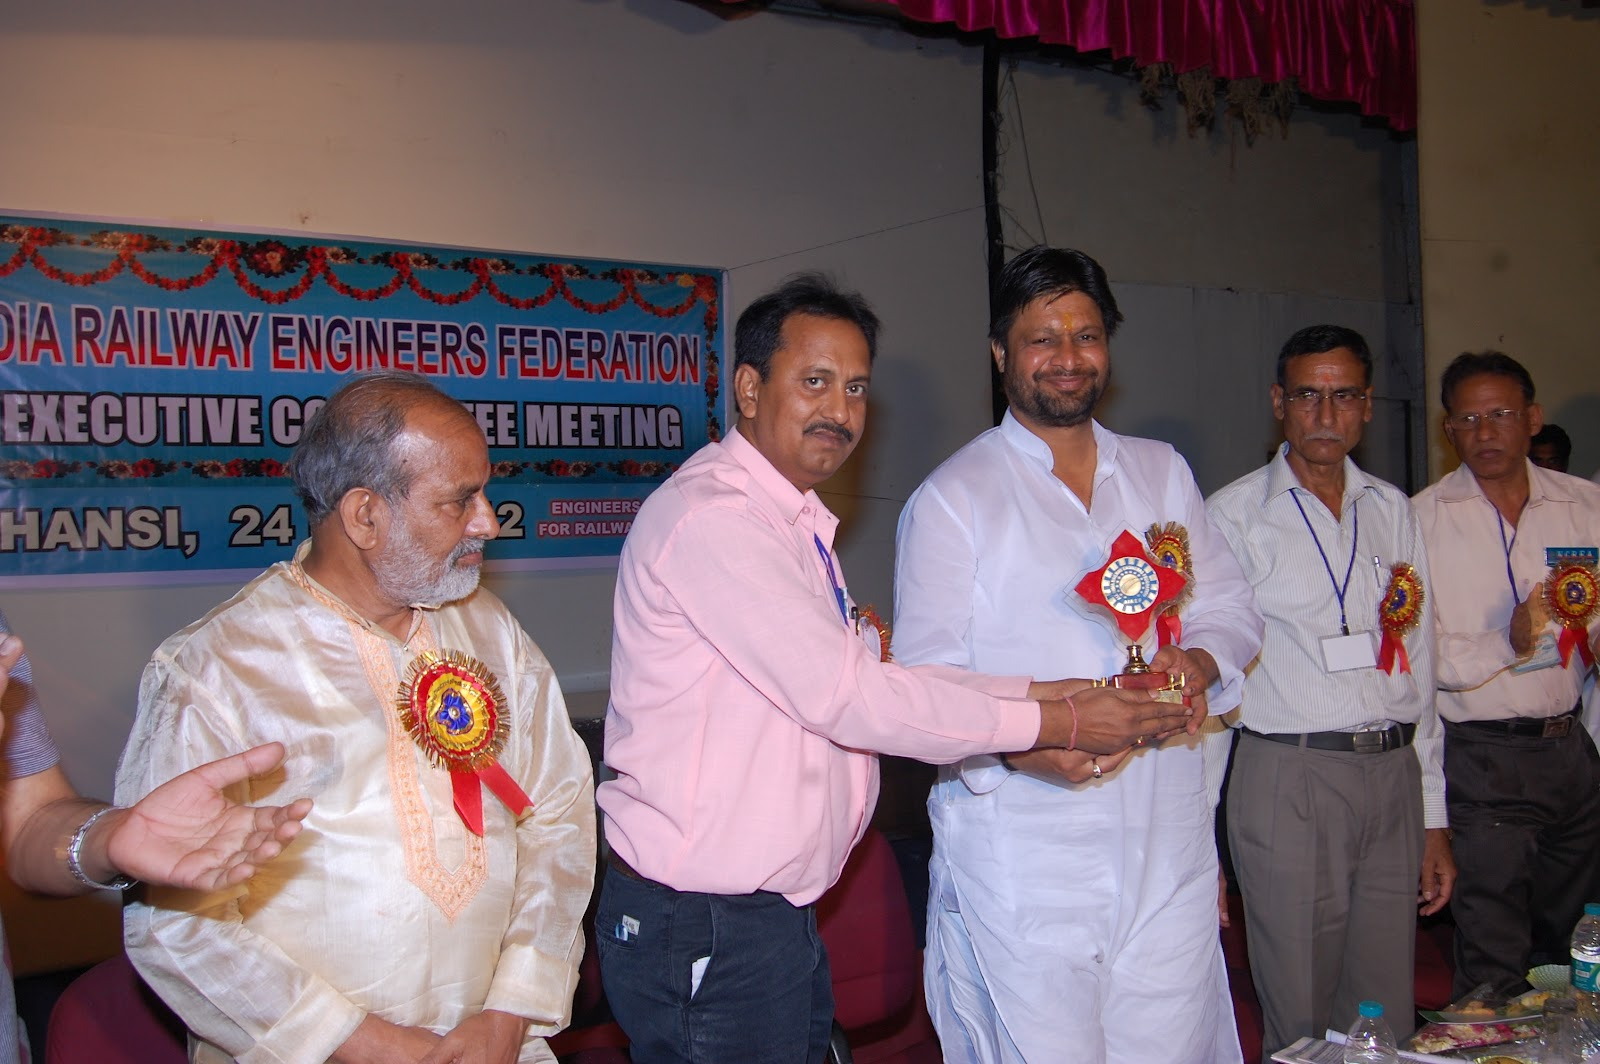 north central railway engineers association cec meeting of airef shri pradeep jain aditya hon ble minister of state for rural development govt of grace this occasion as chief guest